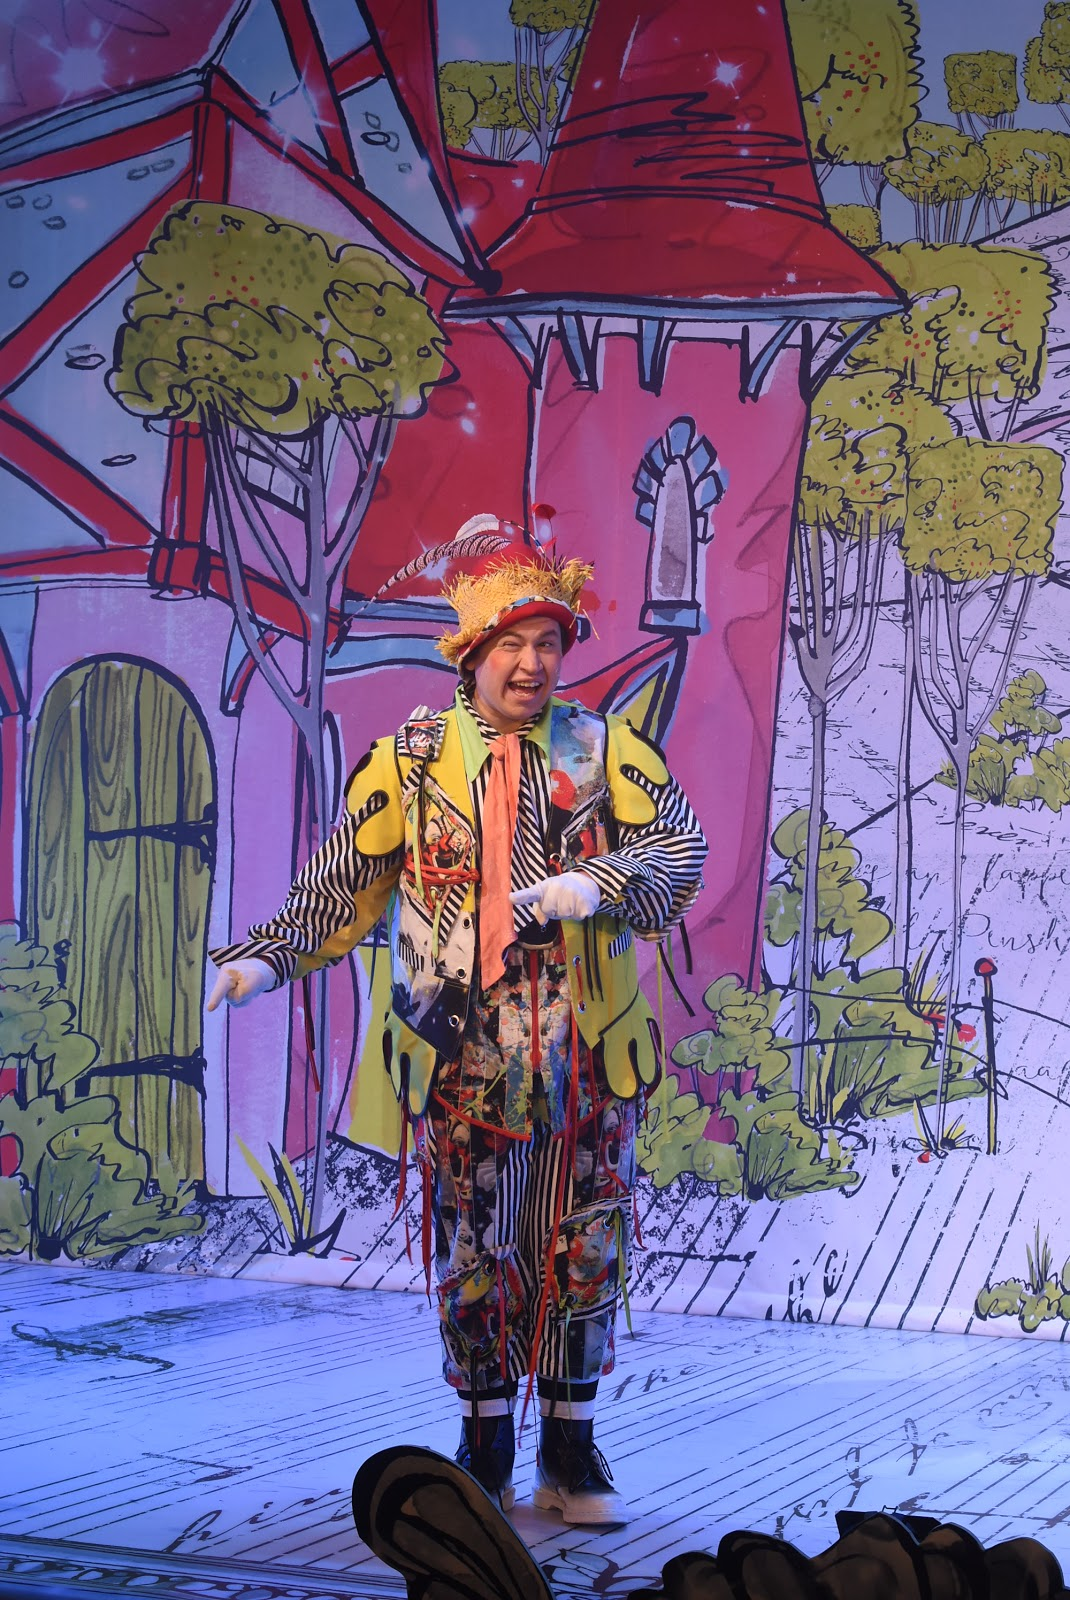 David John Hopper in The Lambton Worm Pantomime at The Customs House South Shields